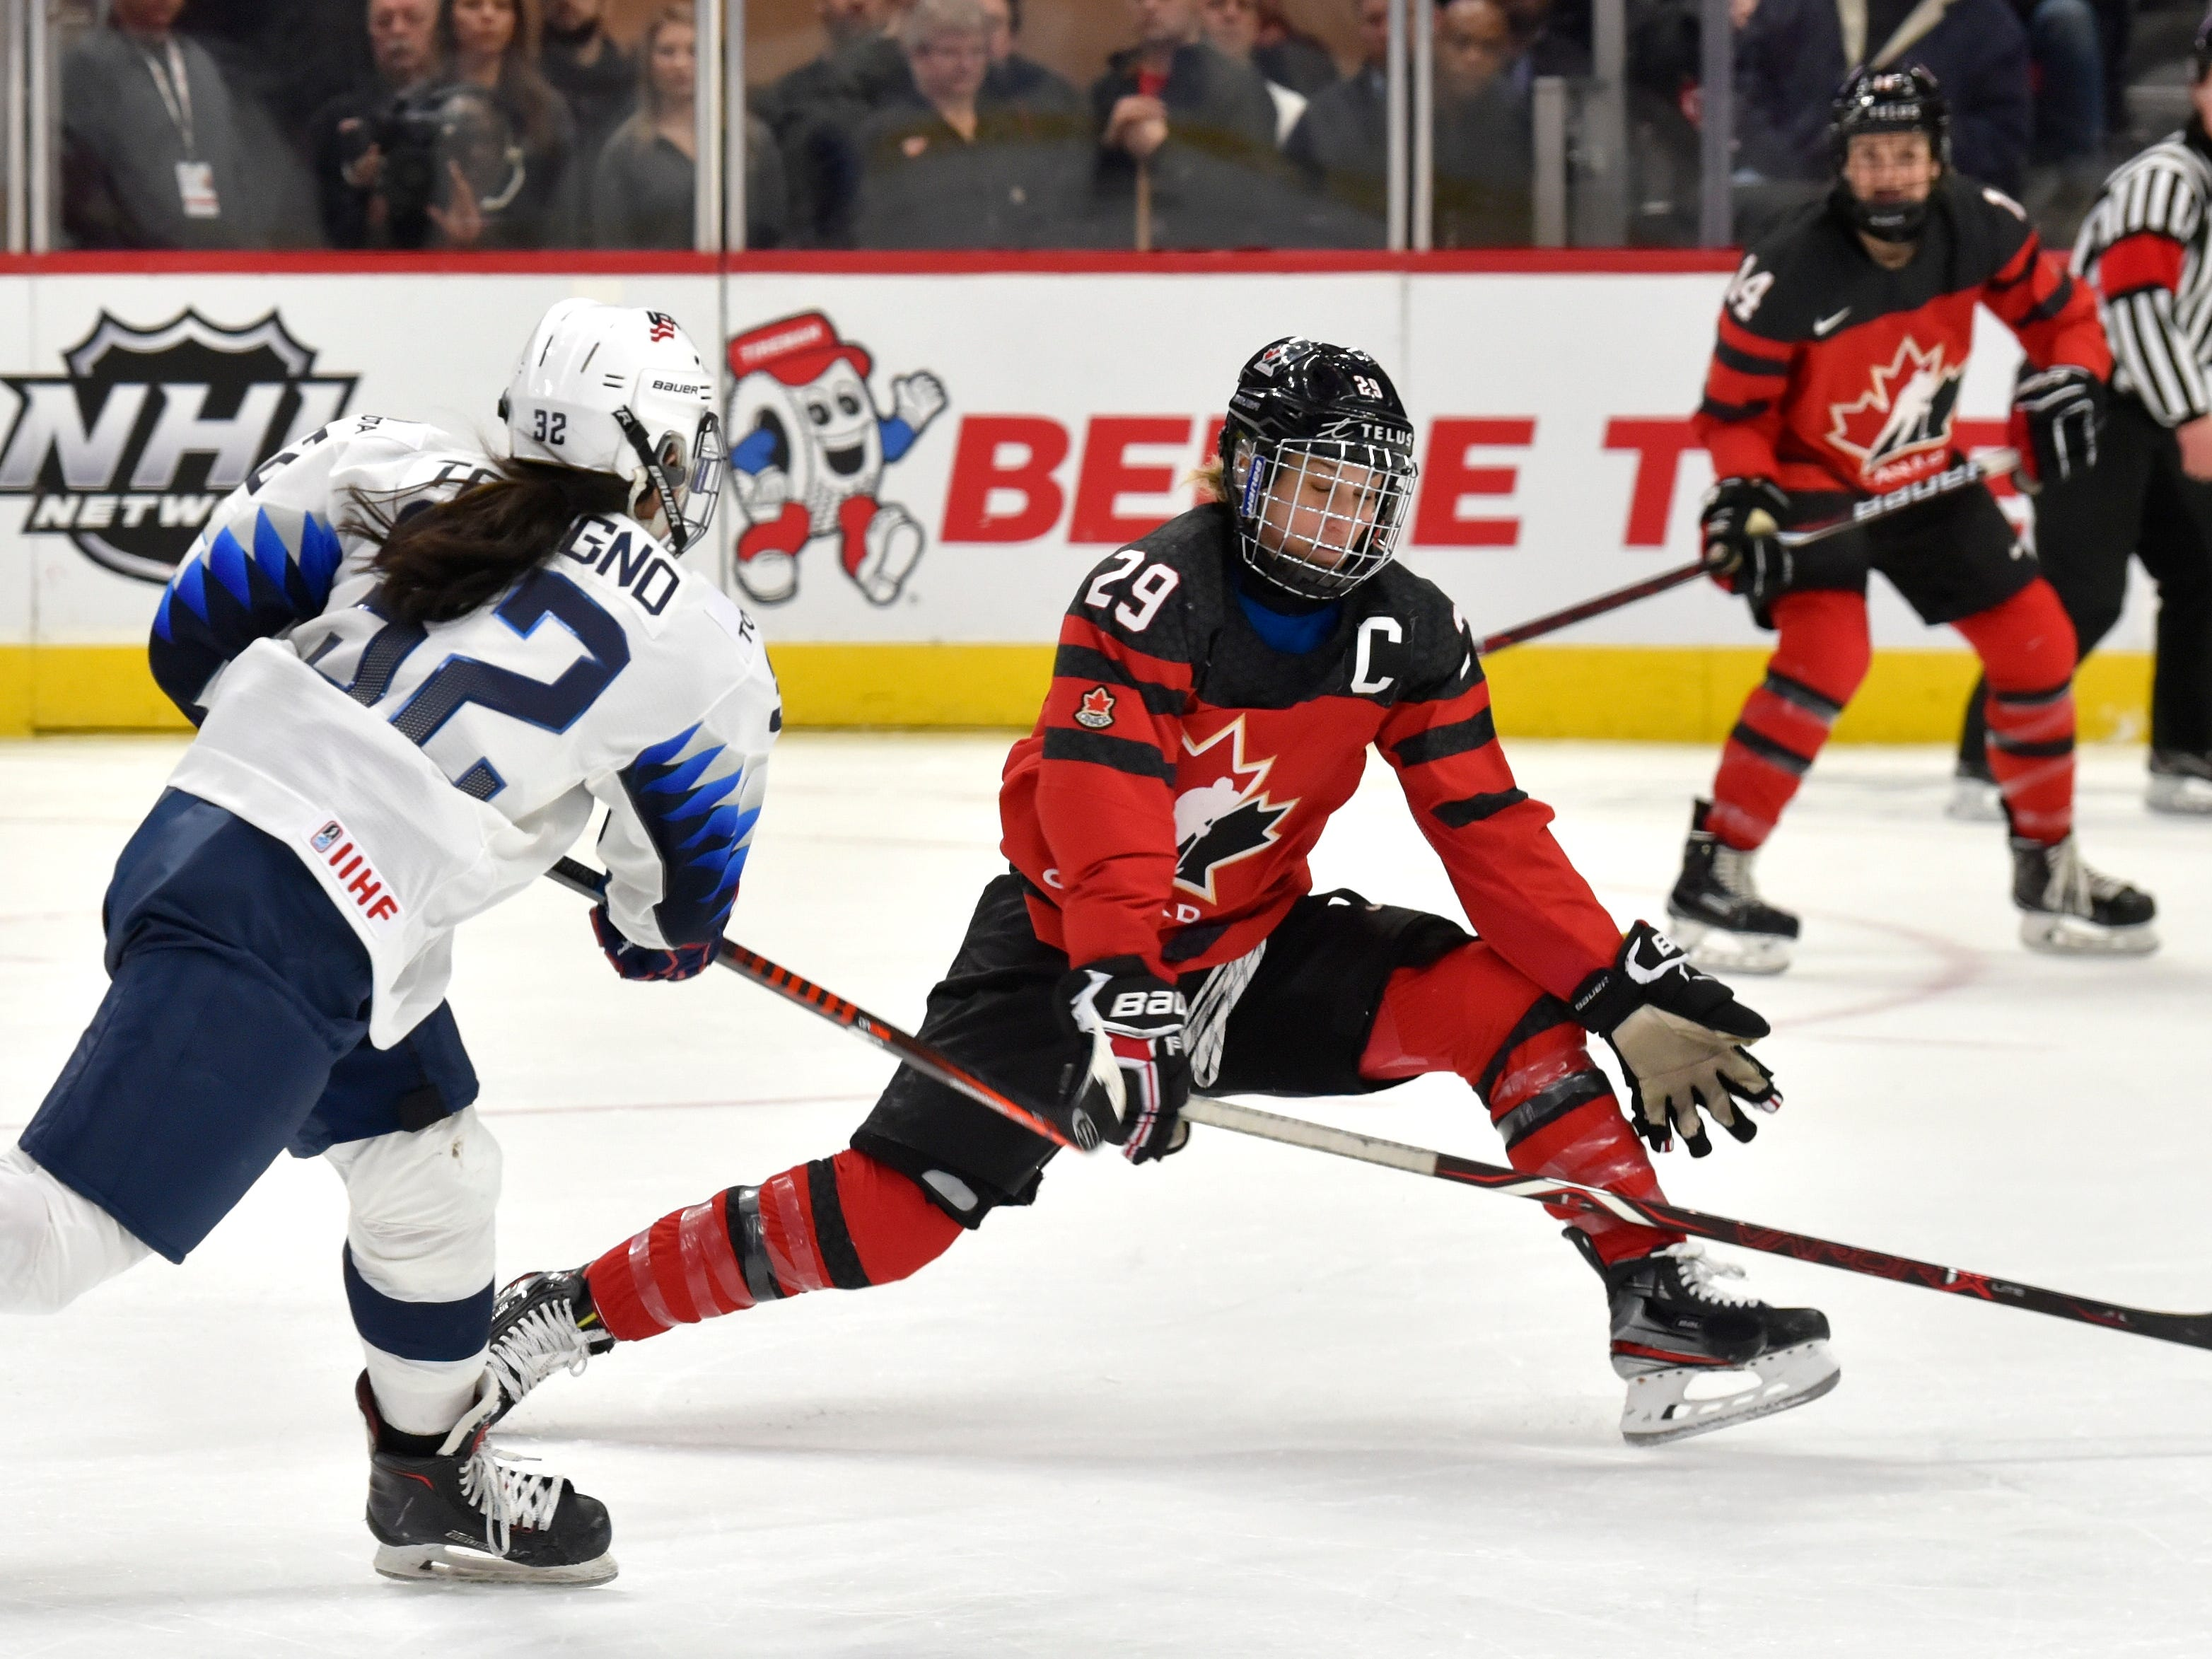 U.S's Dana Trivigno(32) shoots as Canada's Marie-Philip Poulin(29) tries to block the puck near the end of the match.